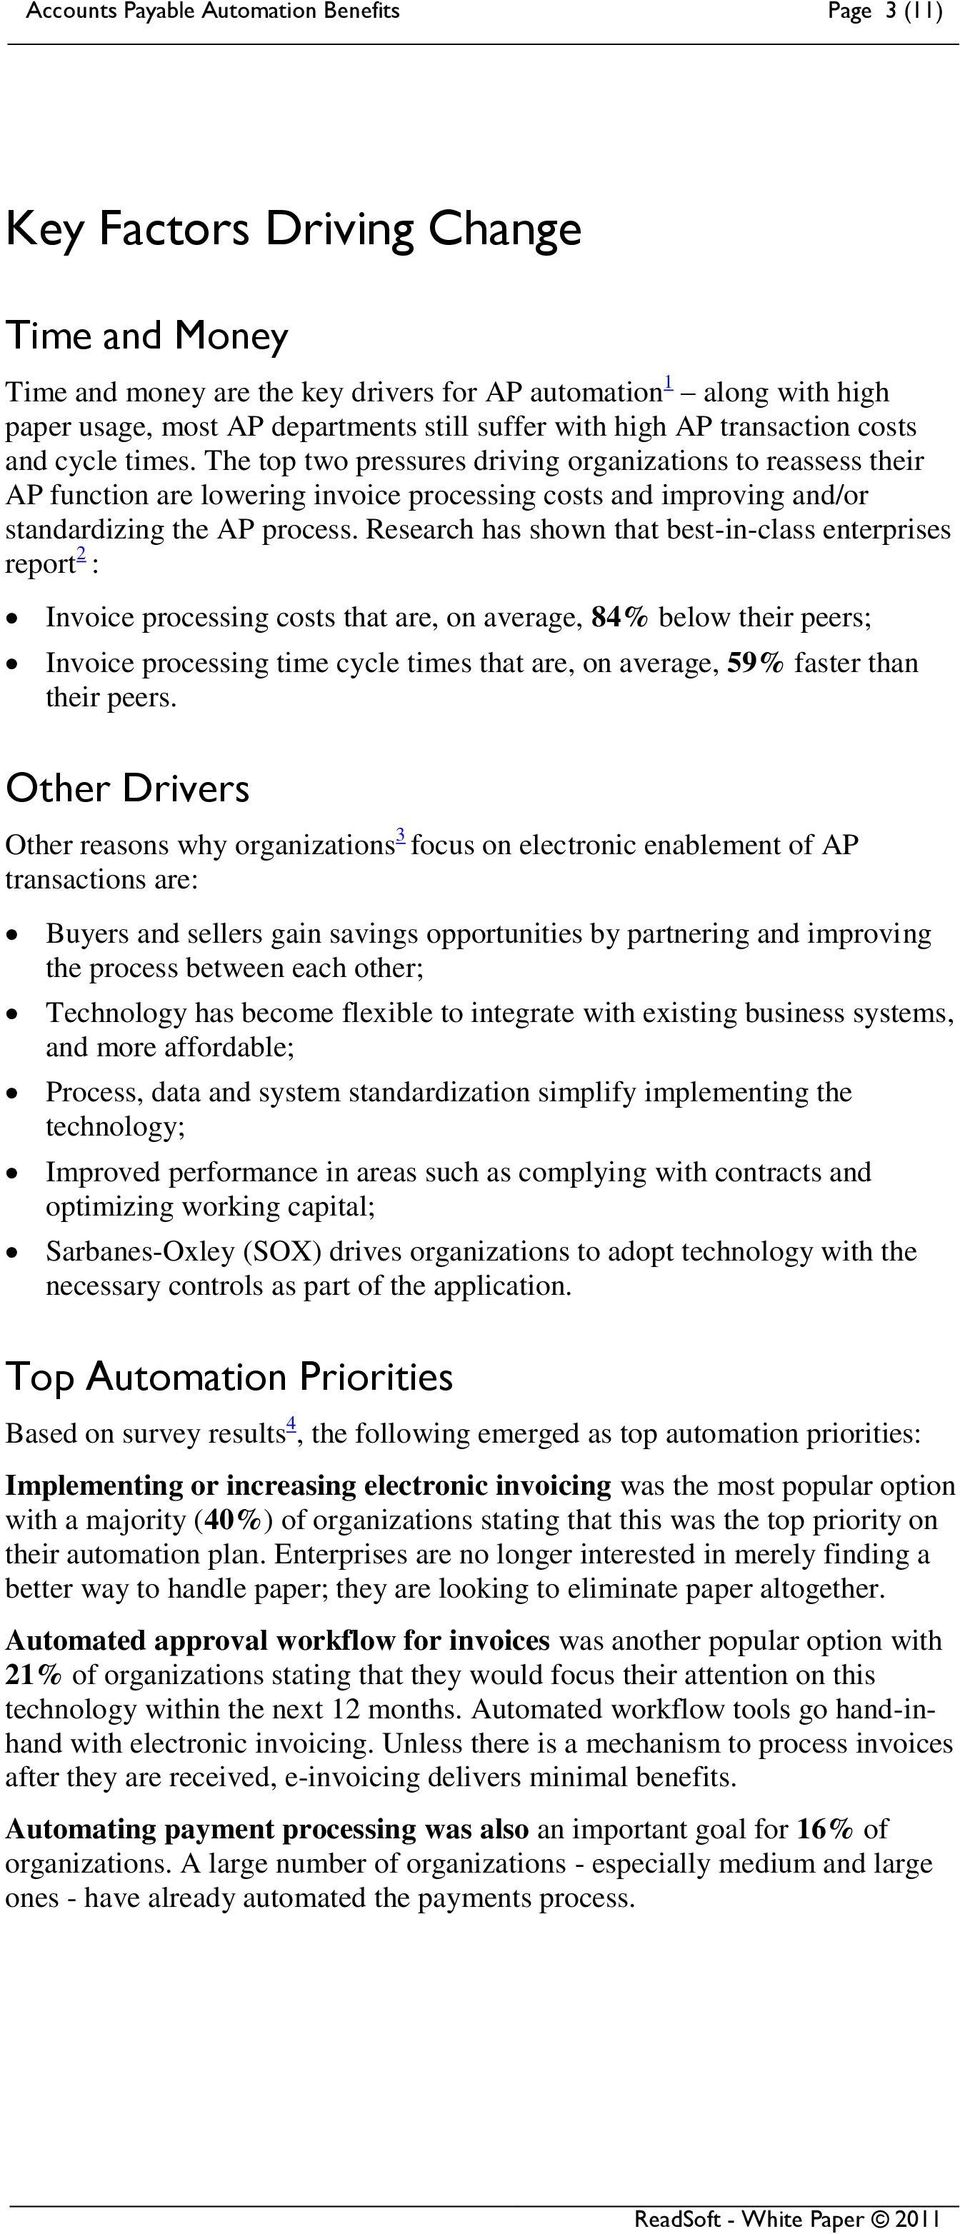 The top two pressures driving organizations to reassess their AP function are lowering invoice processing costs and improving and/or standardizing the AP process.